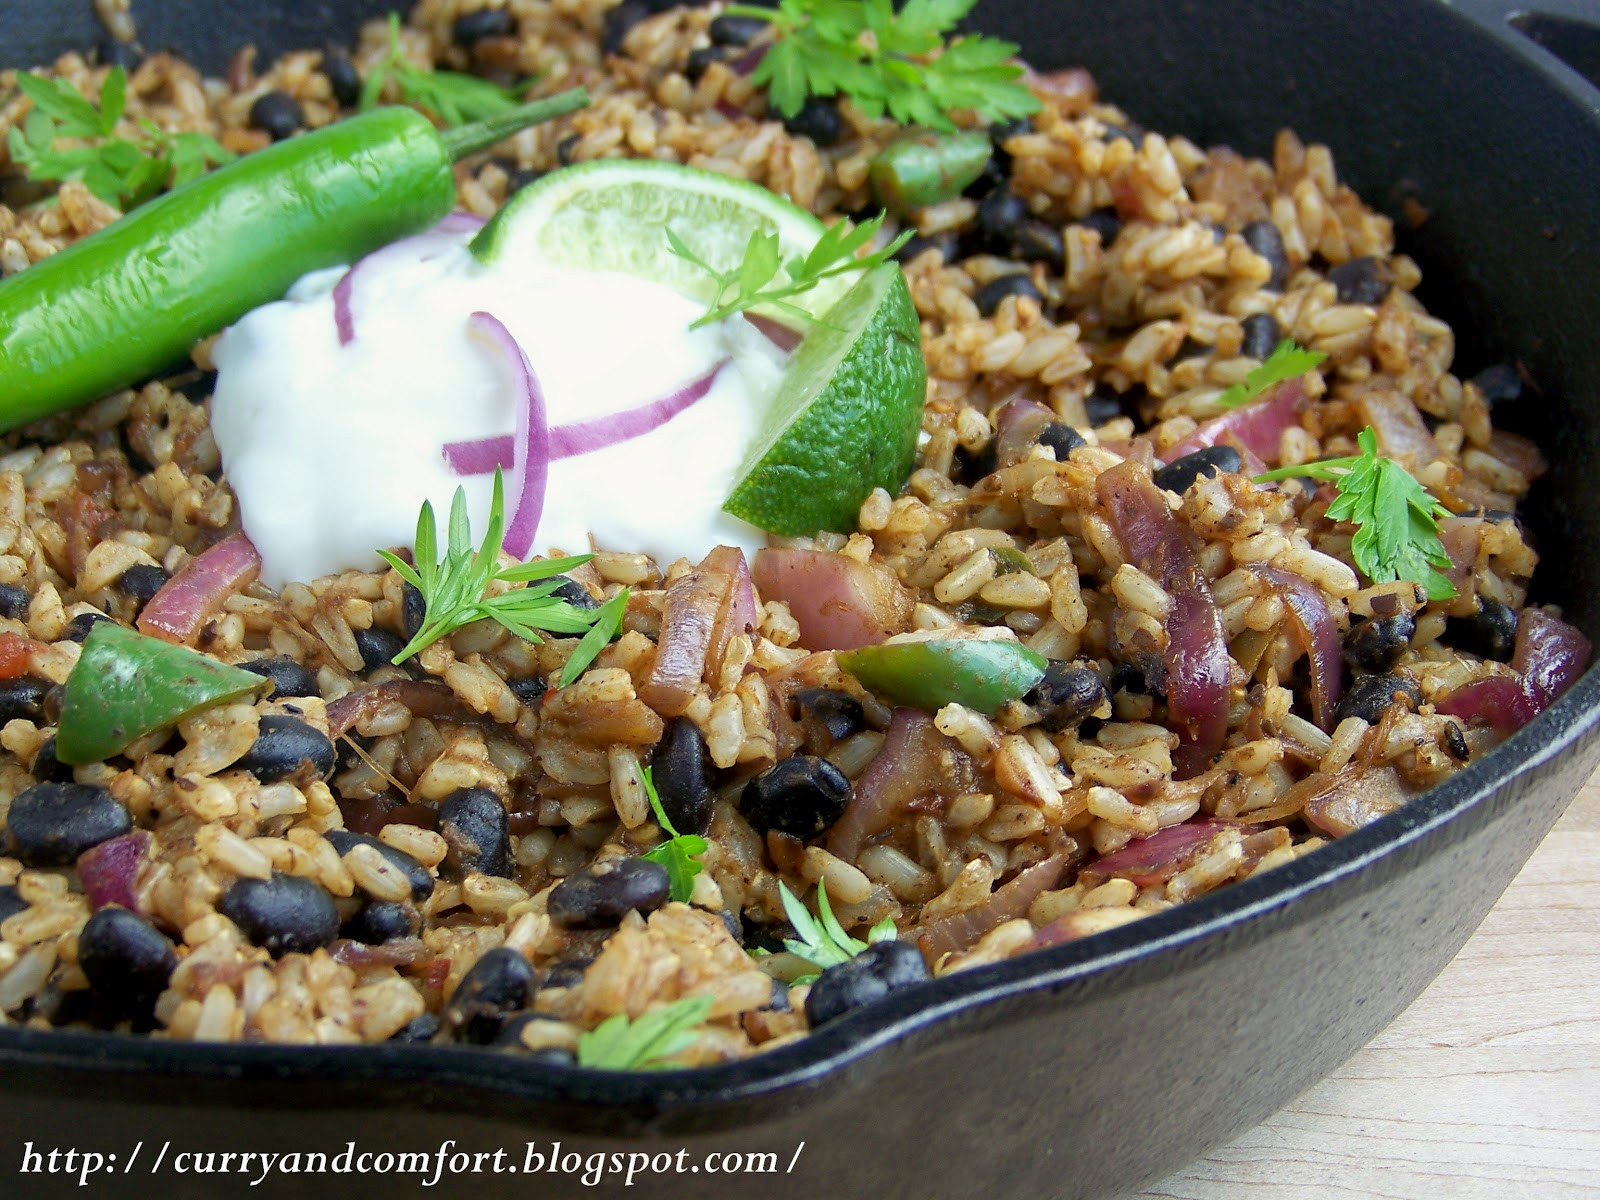 Black Beans And Brown Rice Healthy  Kitchen Simmer Black Beans and Brown Rice